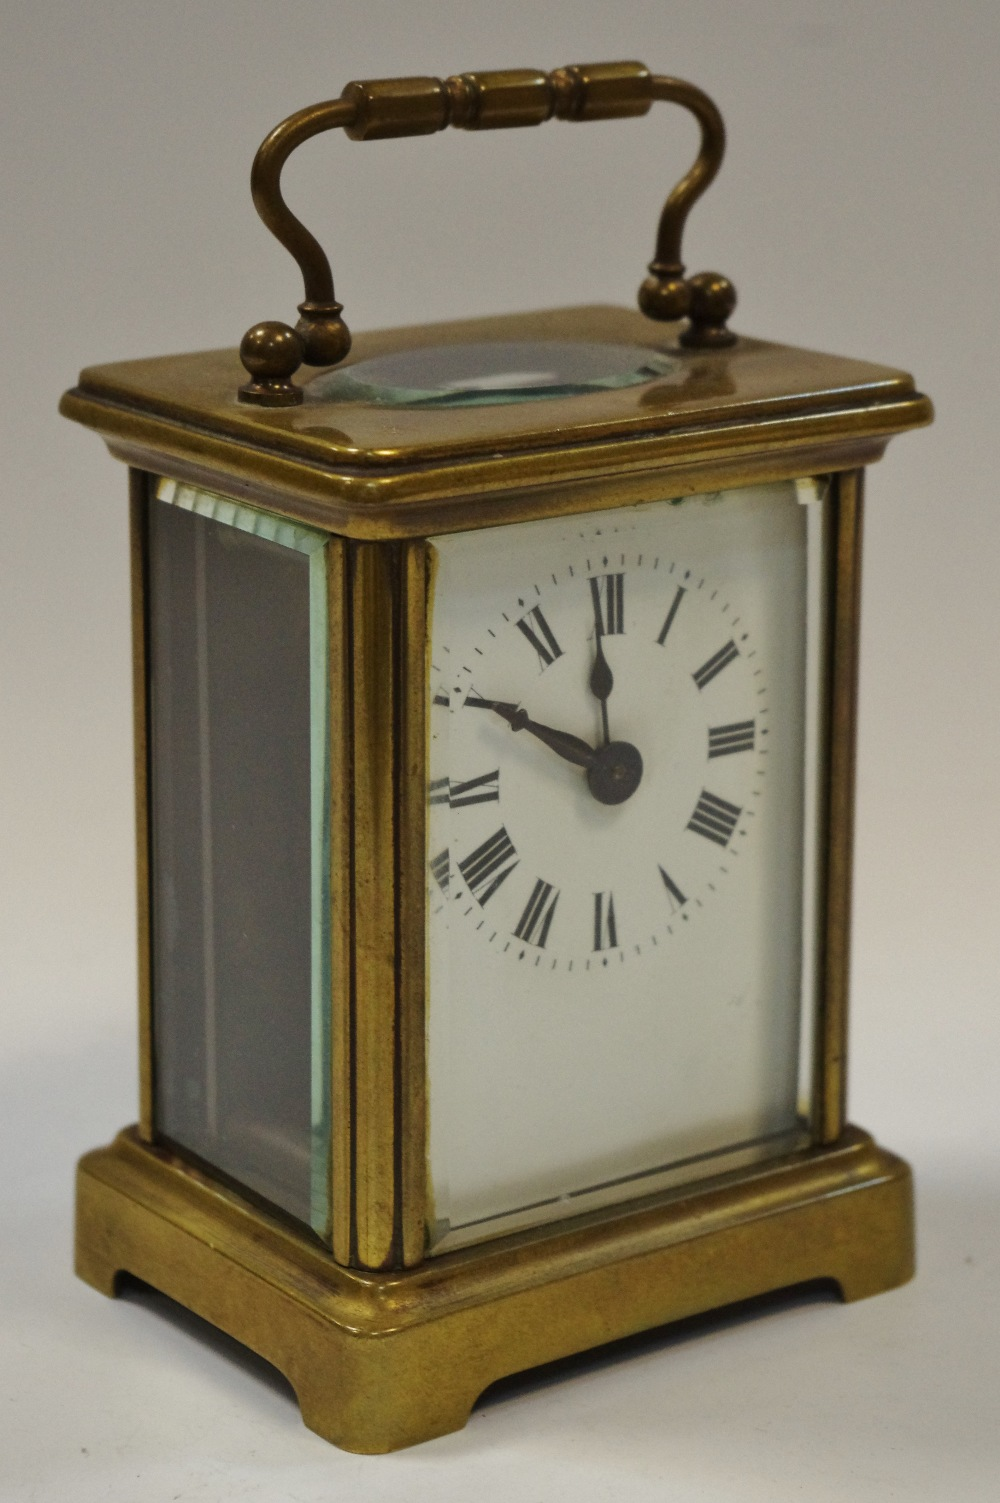 Lot 3 - An early 20th century lacquered brass carriage clock